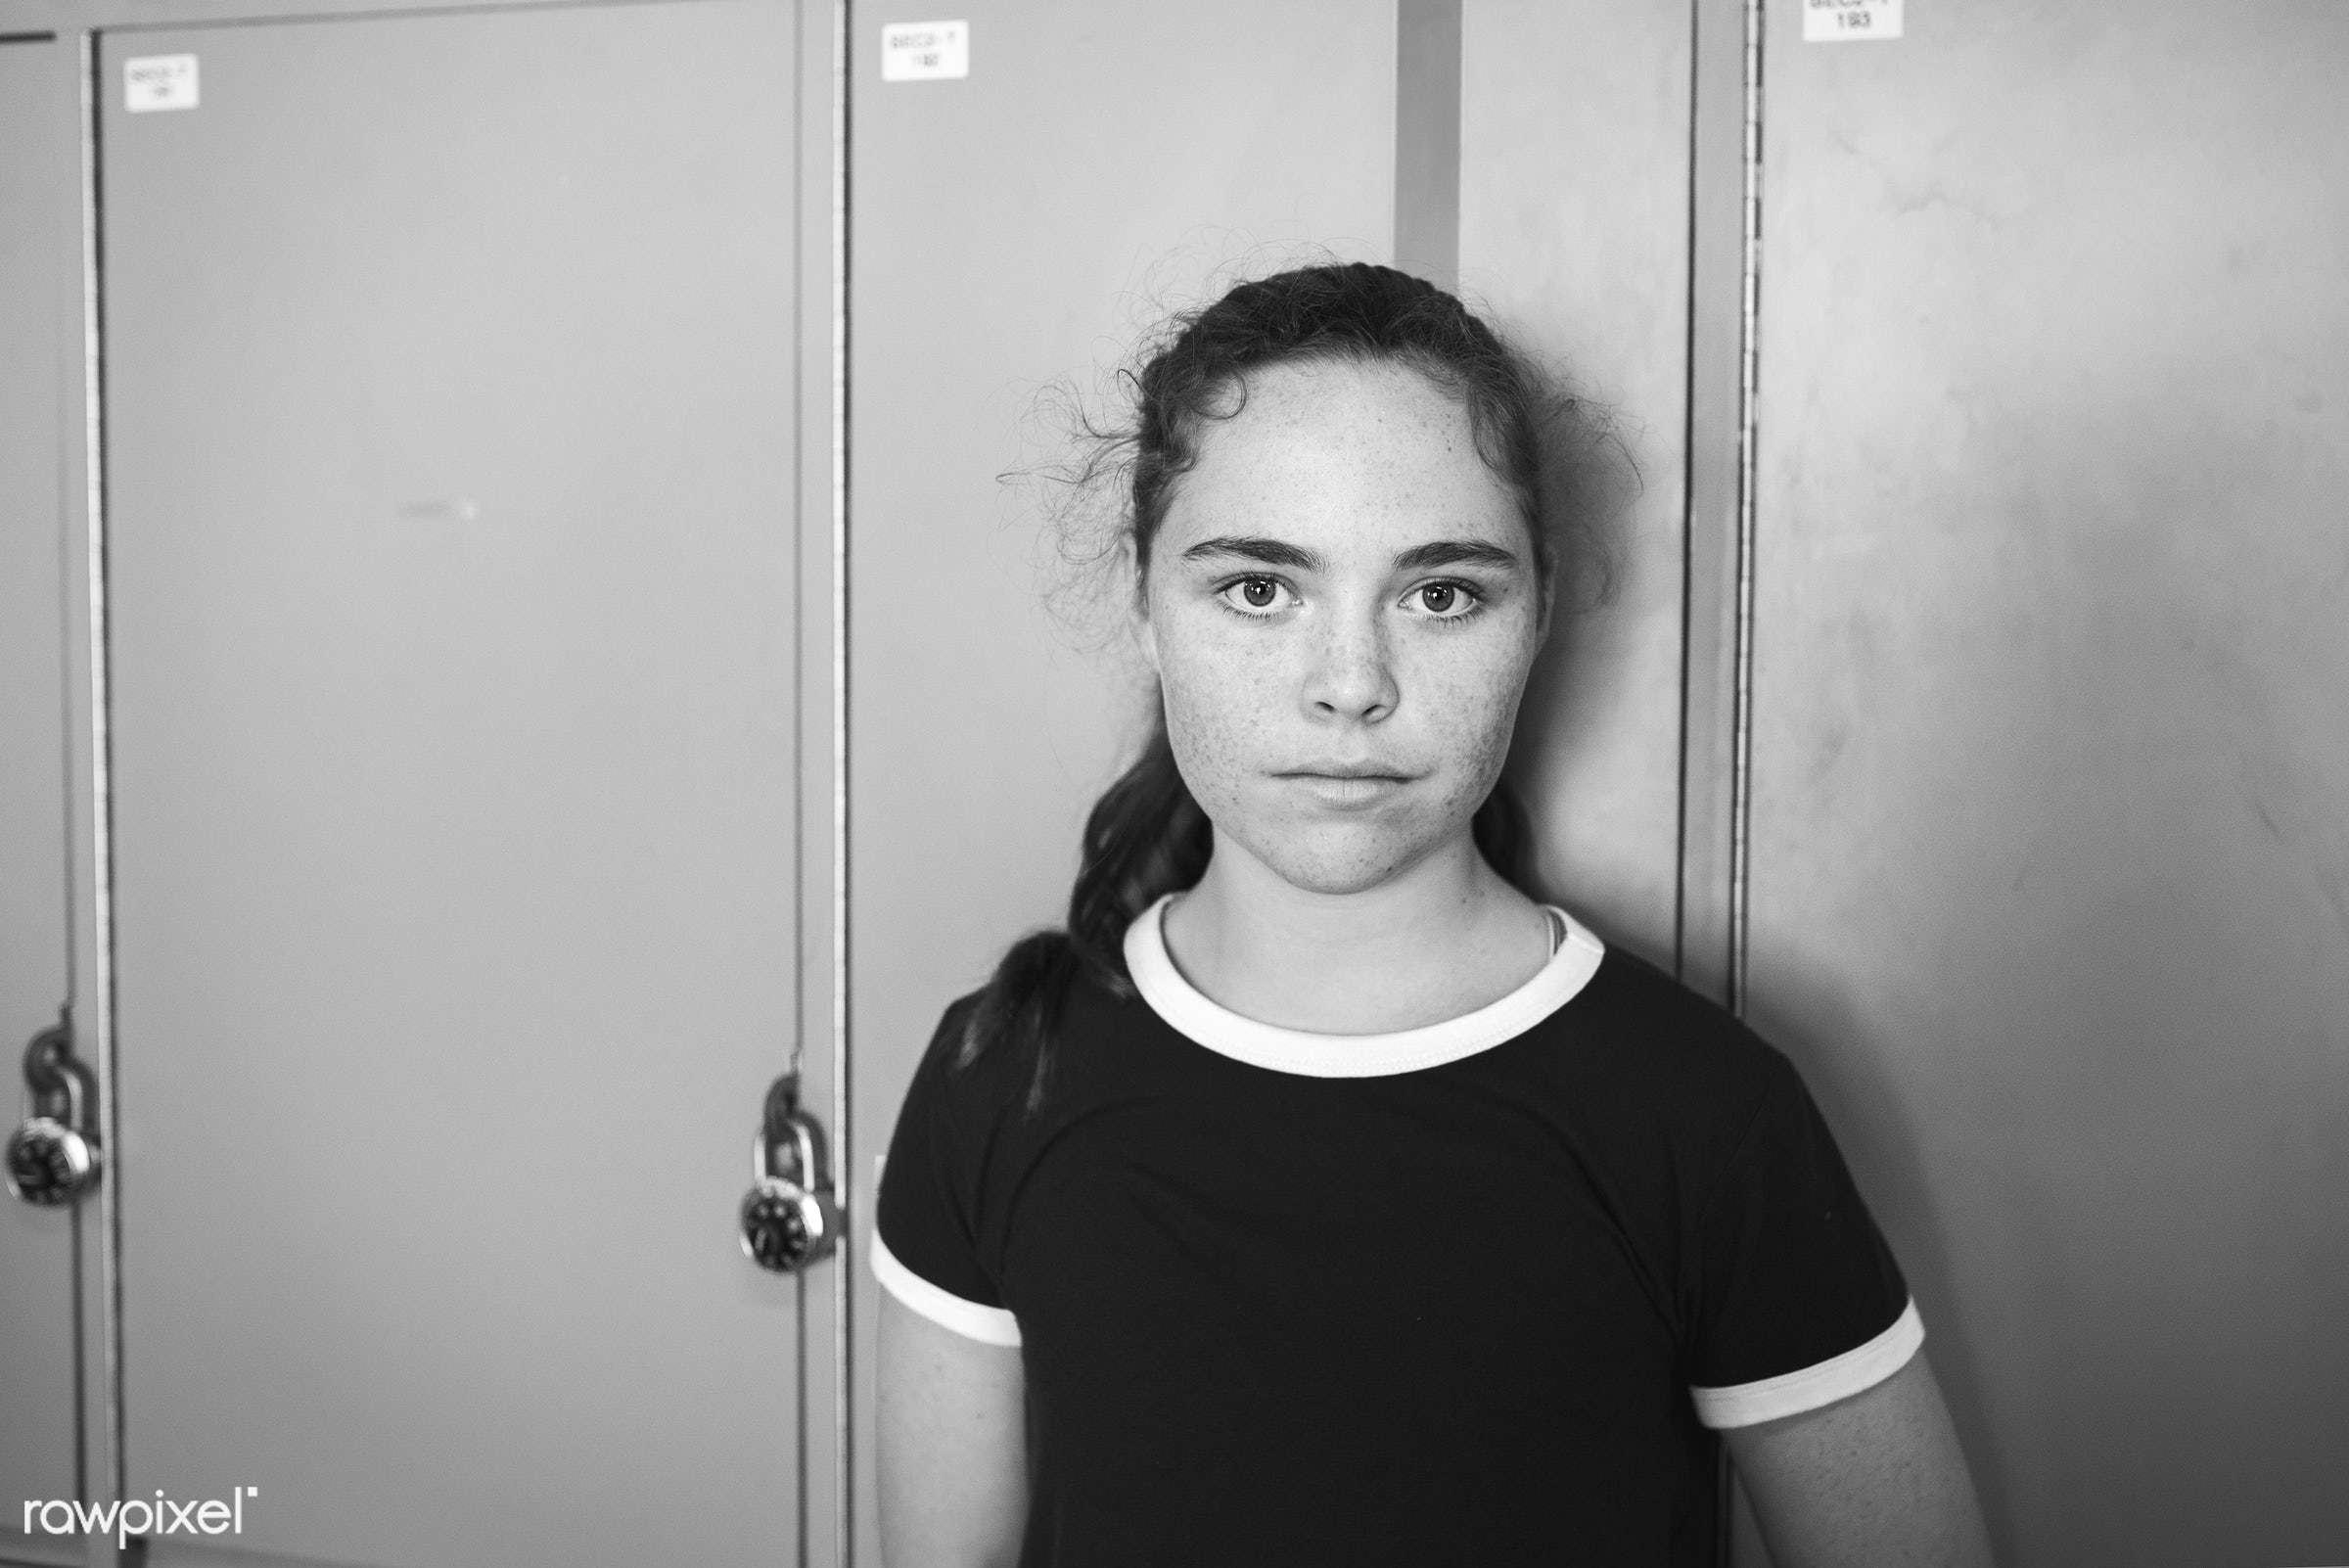 corridor, caucasian, blank expression, staring, girl, young adult, solo, teenager, casual, looking at camera, alone, high...